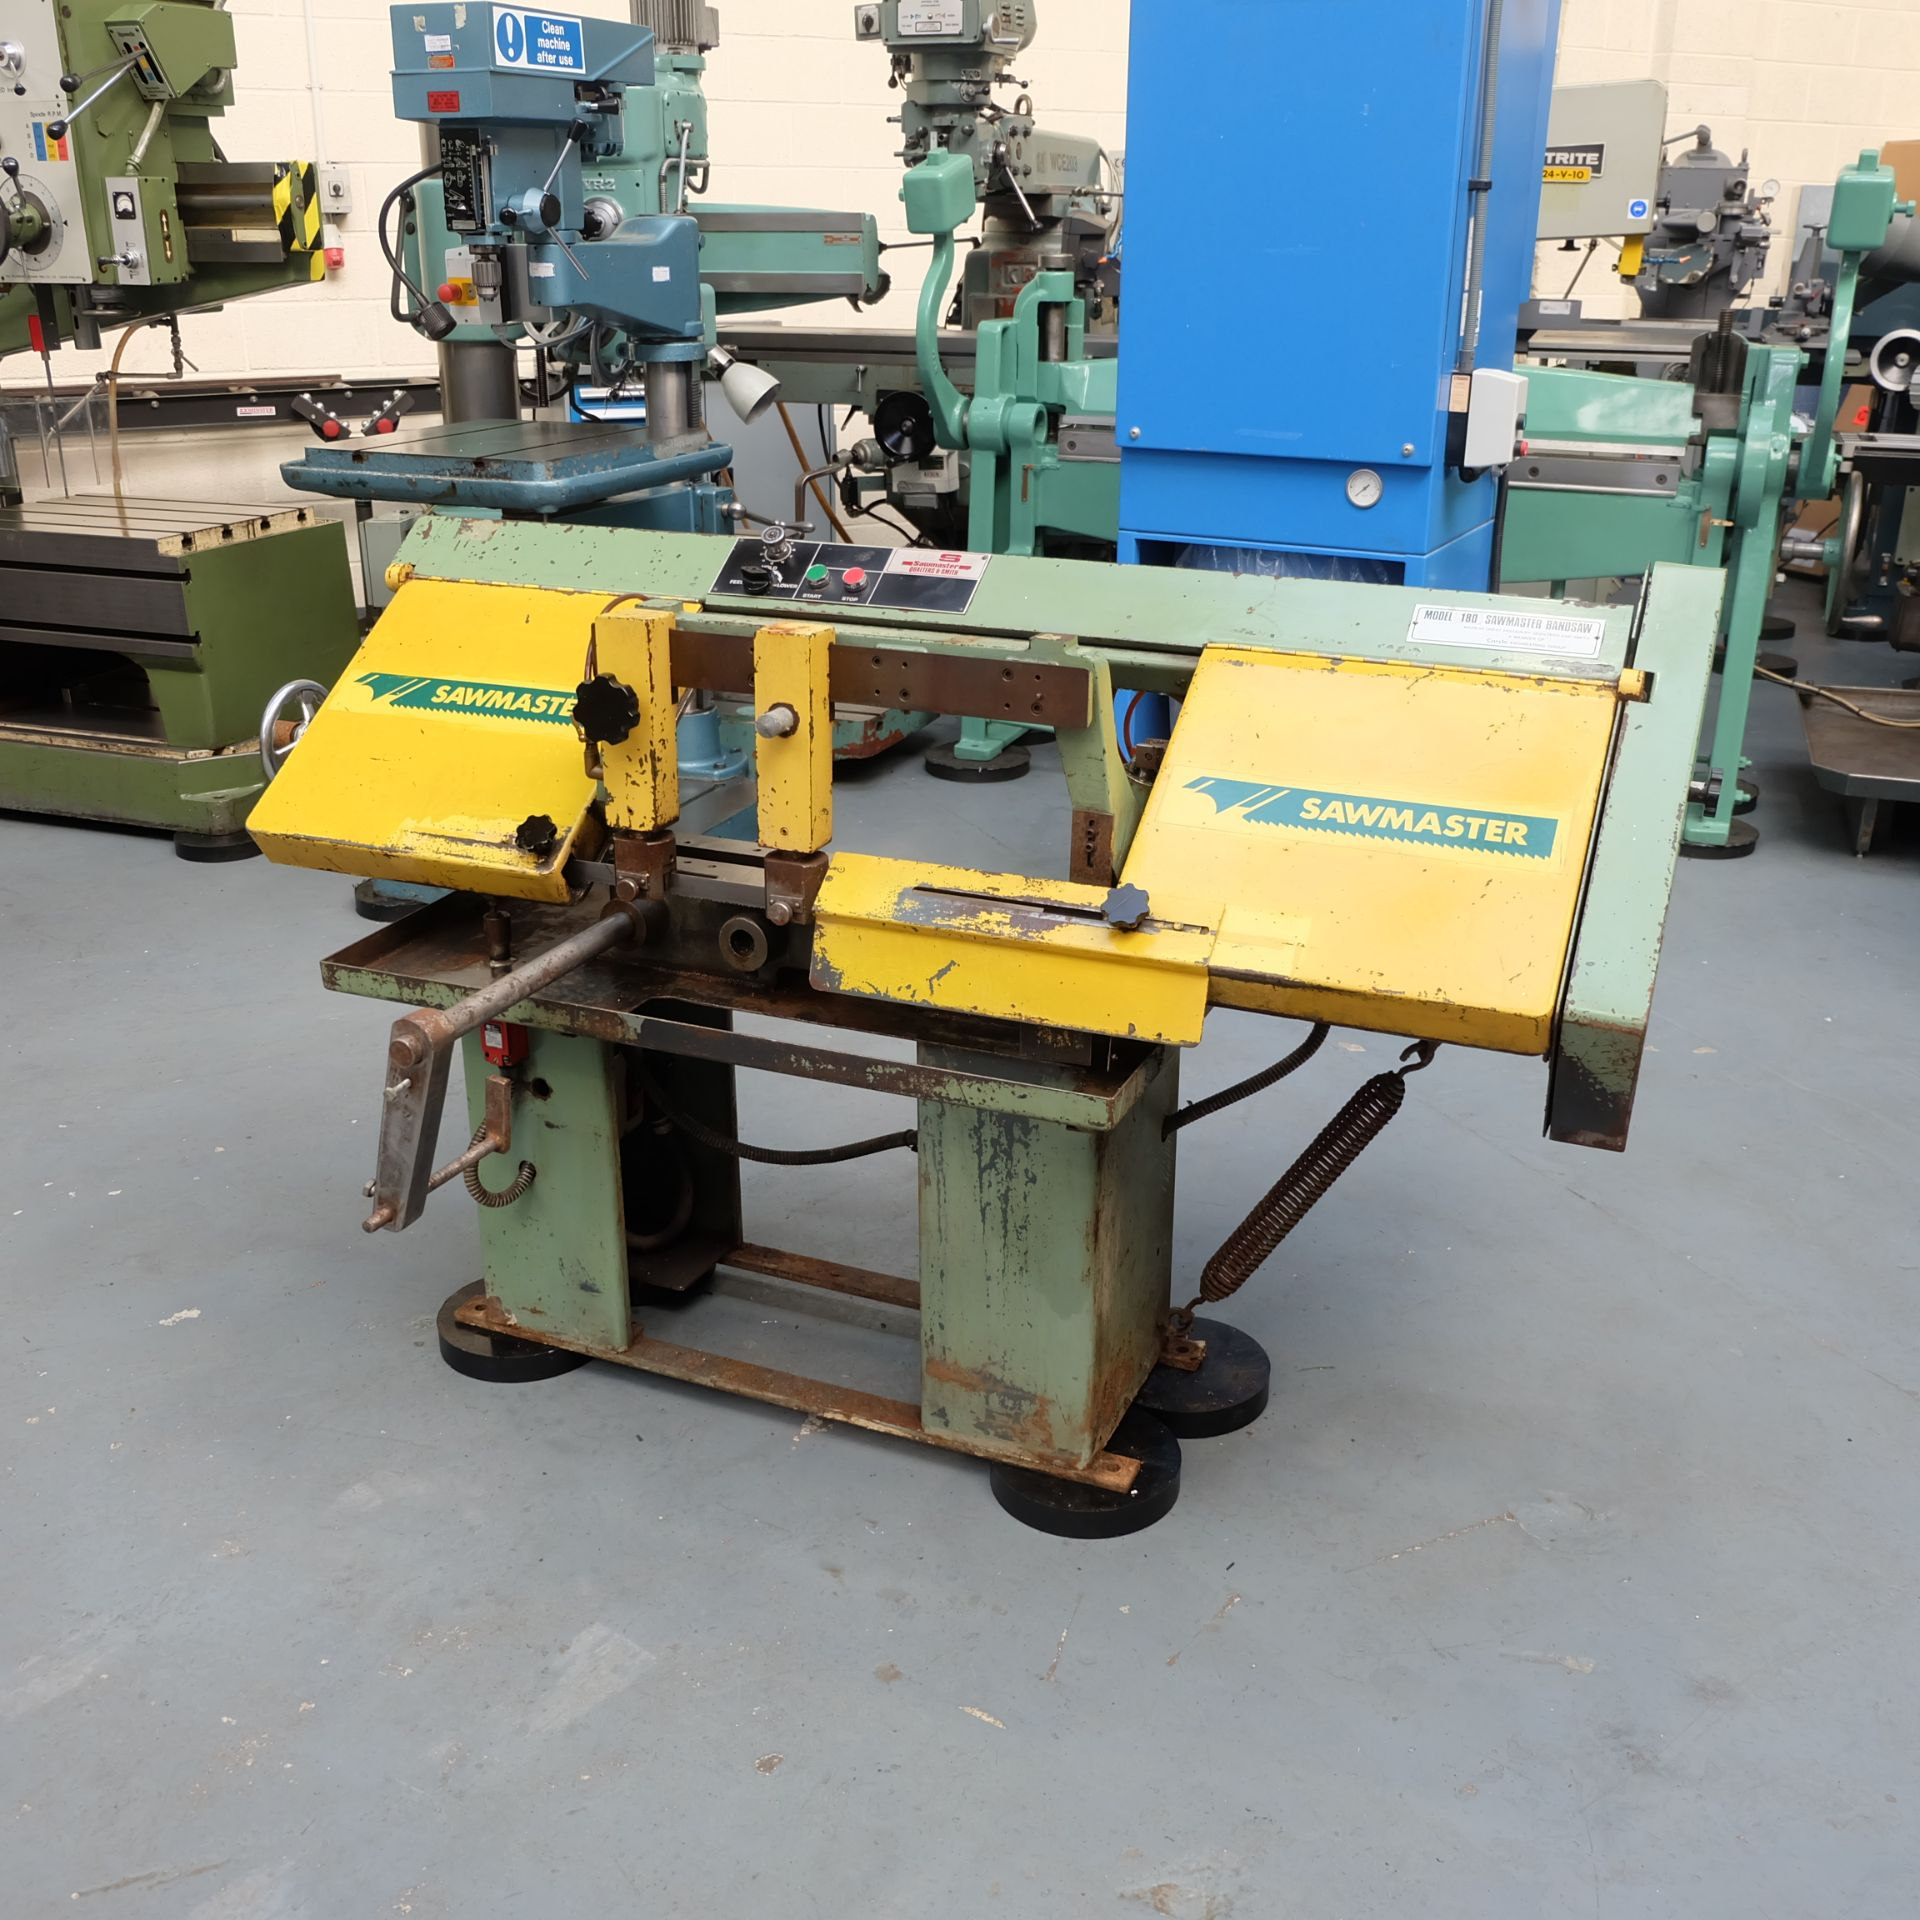 Qualters & Smith Model 180 Sawmaster Horizontal Bandsaw. Capacity Approx 180mm. - Image 2 of 5